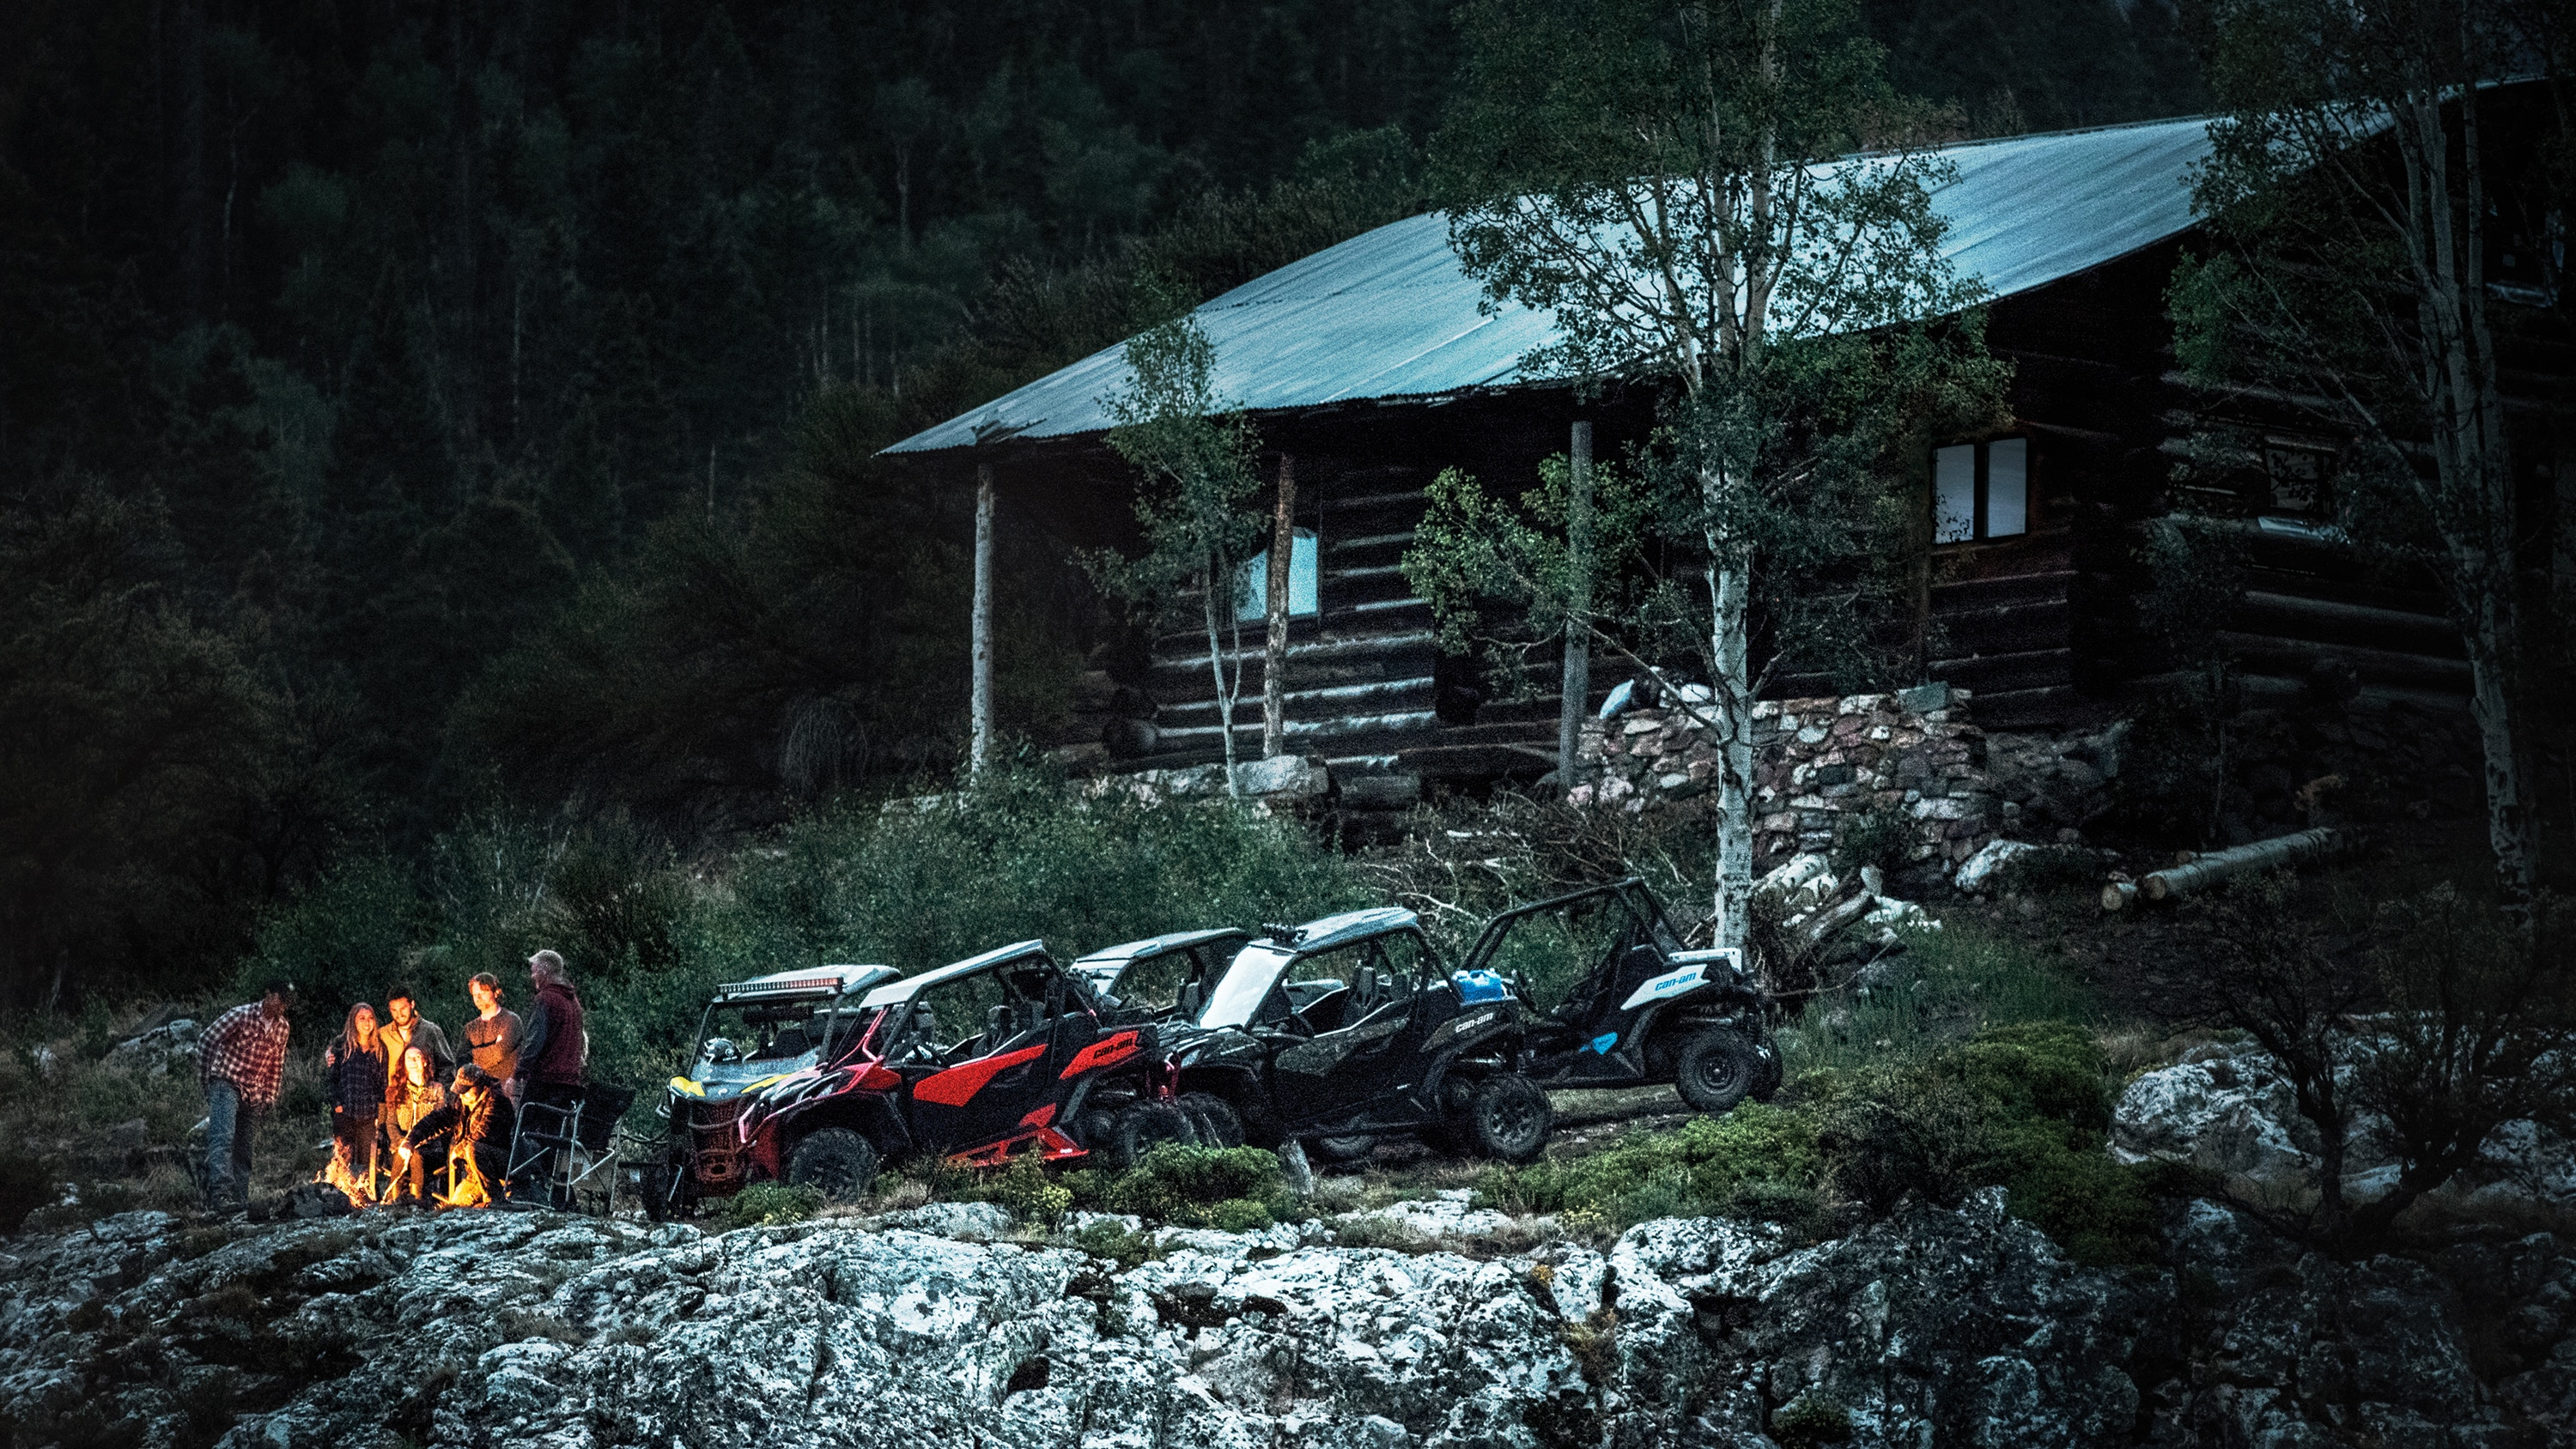 Friends near their Maverick Trail models close to a cabin in the woods